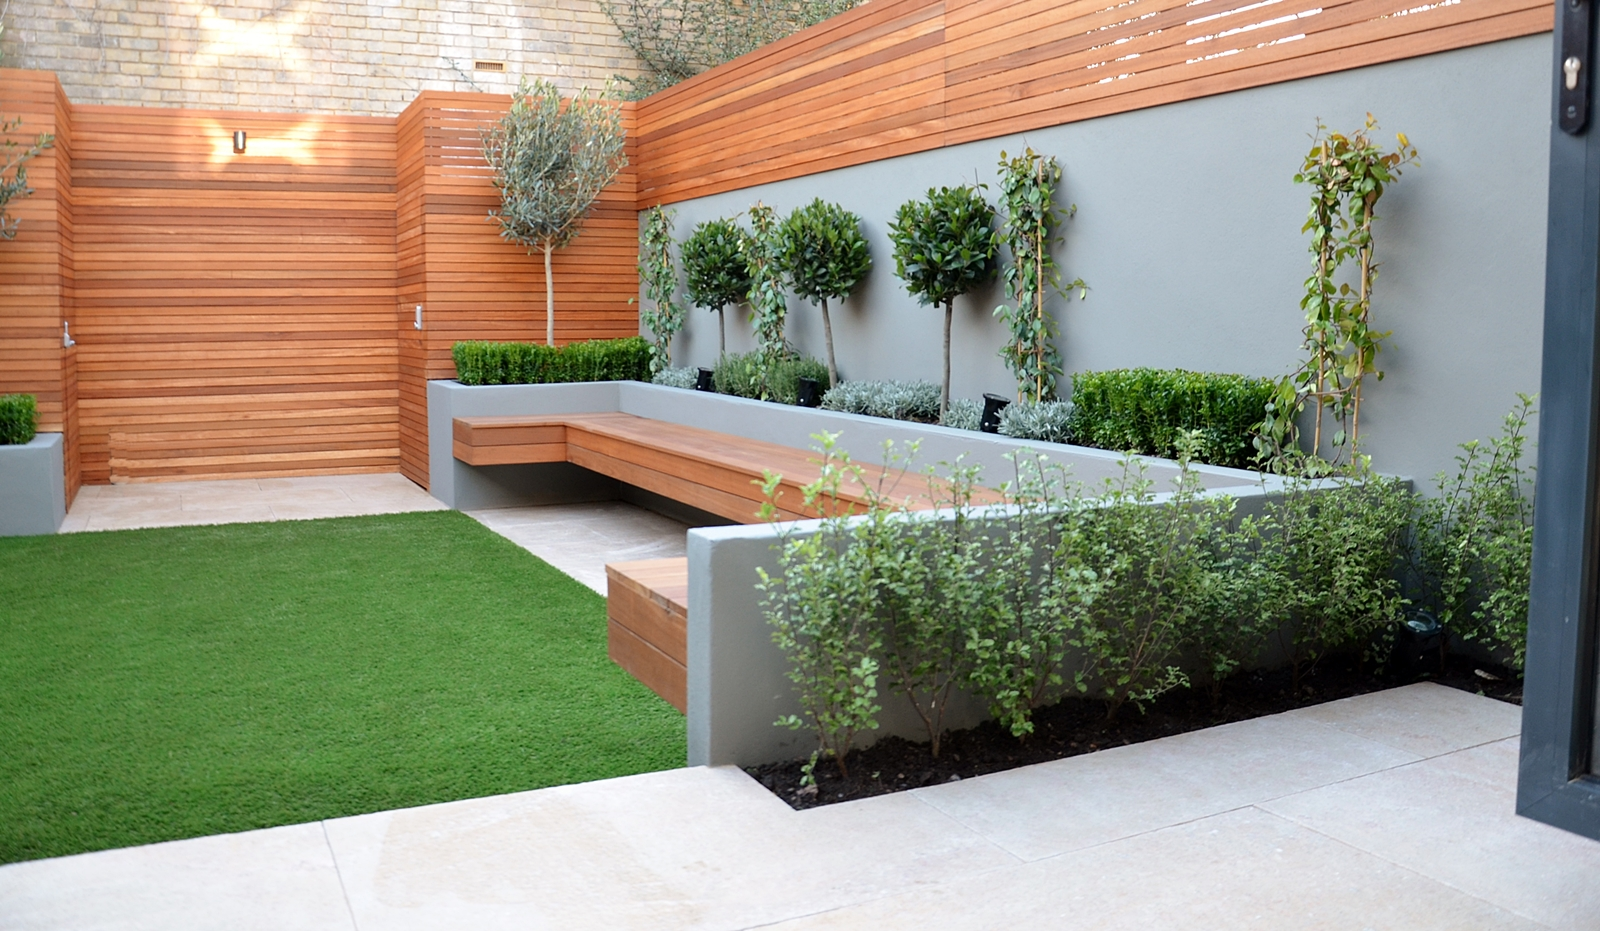 Clapham and london garden design 2015 for Garden design 2015